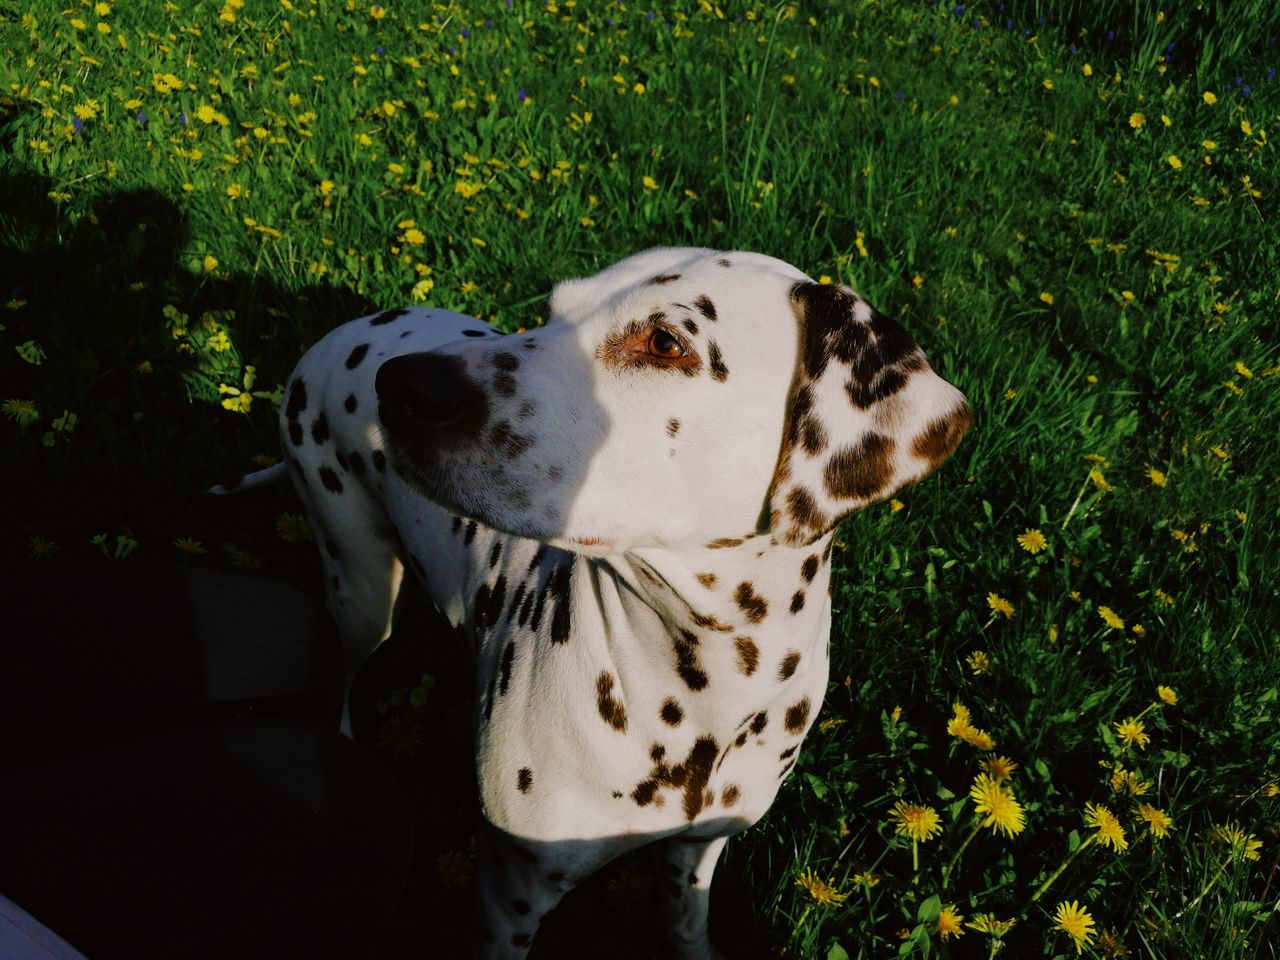 dalmatian dog, dog, pets, domestic animals, one animal, animal themes, mammal, spotted, grass, day, no people, growth, nature, outdoors, close-up